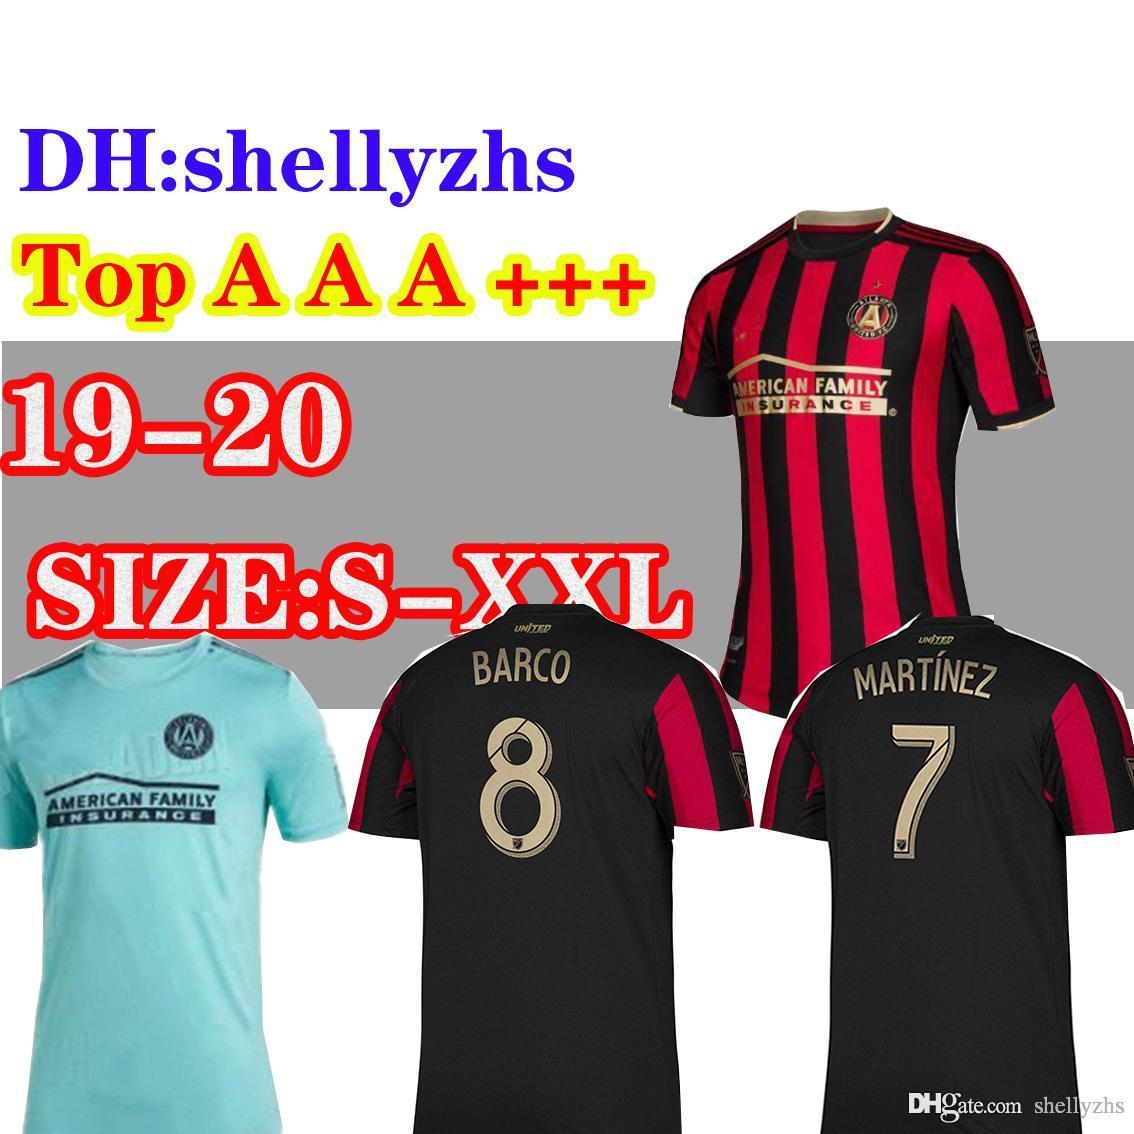 reputable site 8982c 247c8 Parley MLS 2019 20 Atlanta United FC jersey ALMIRON MARTINEZ home away  soccer jerseys 19 20 VILLALBA Atlanta BARCO away football shirt